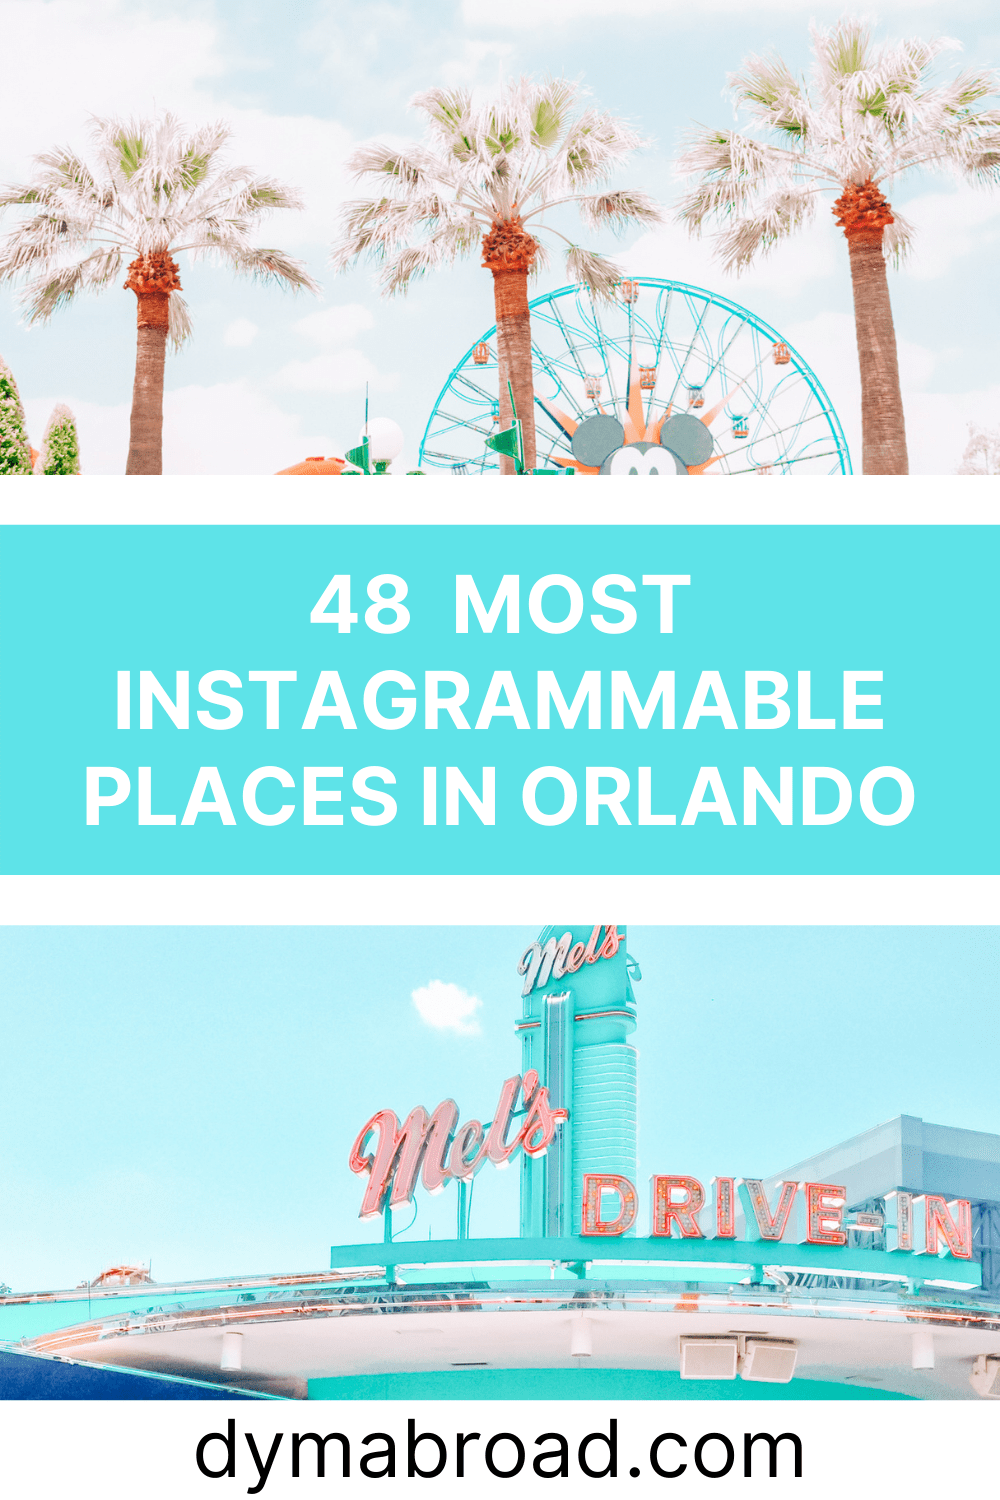 Instagrammable places in Orlando Pinterest image